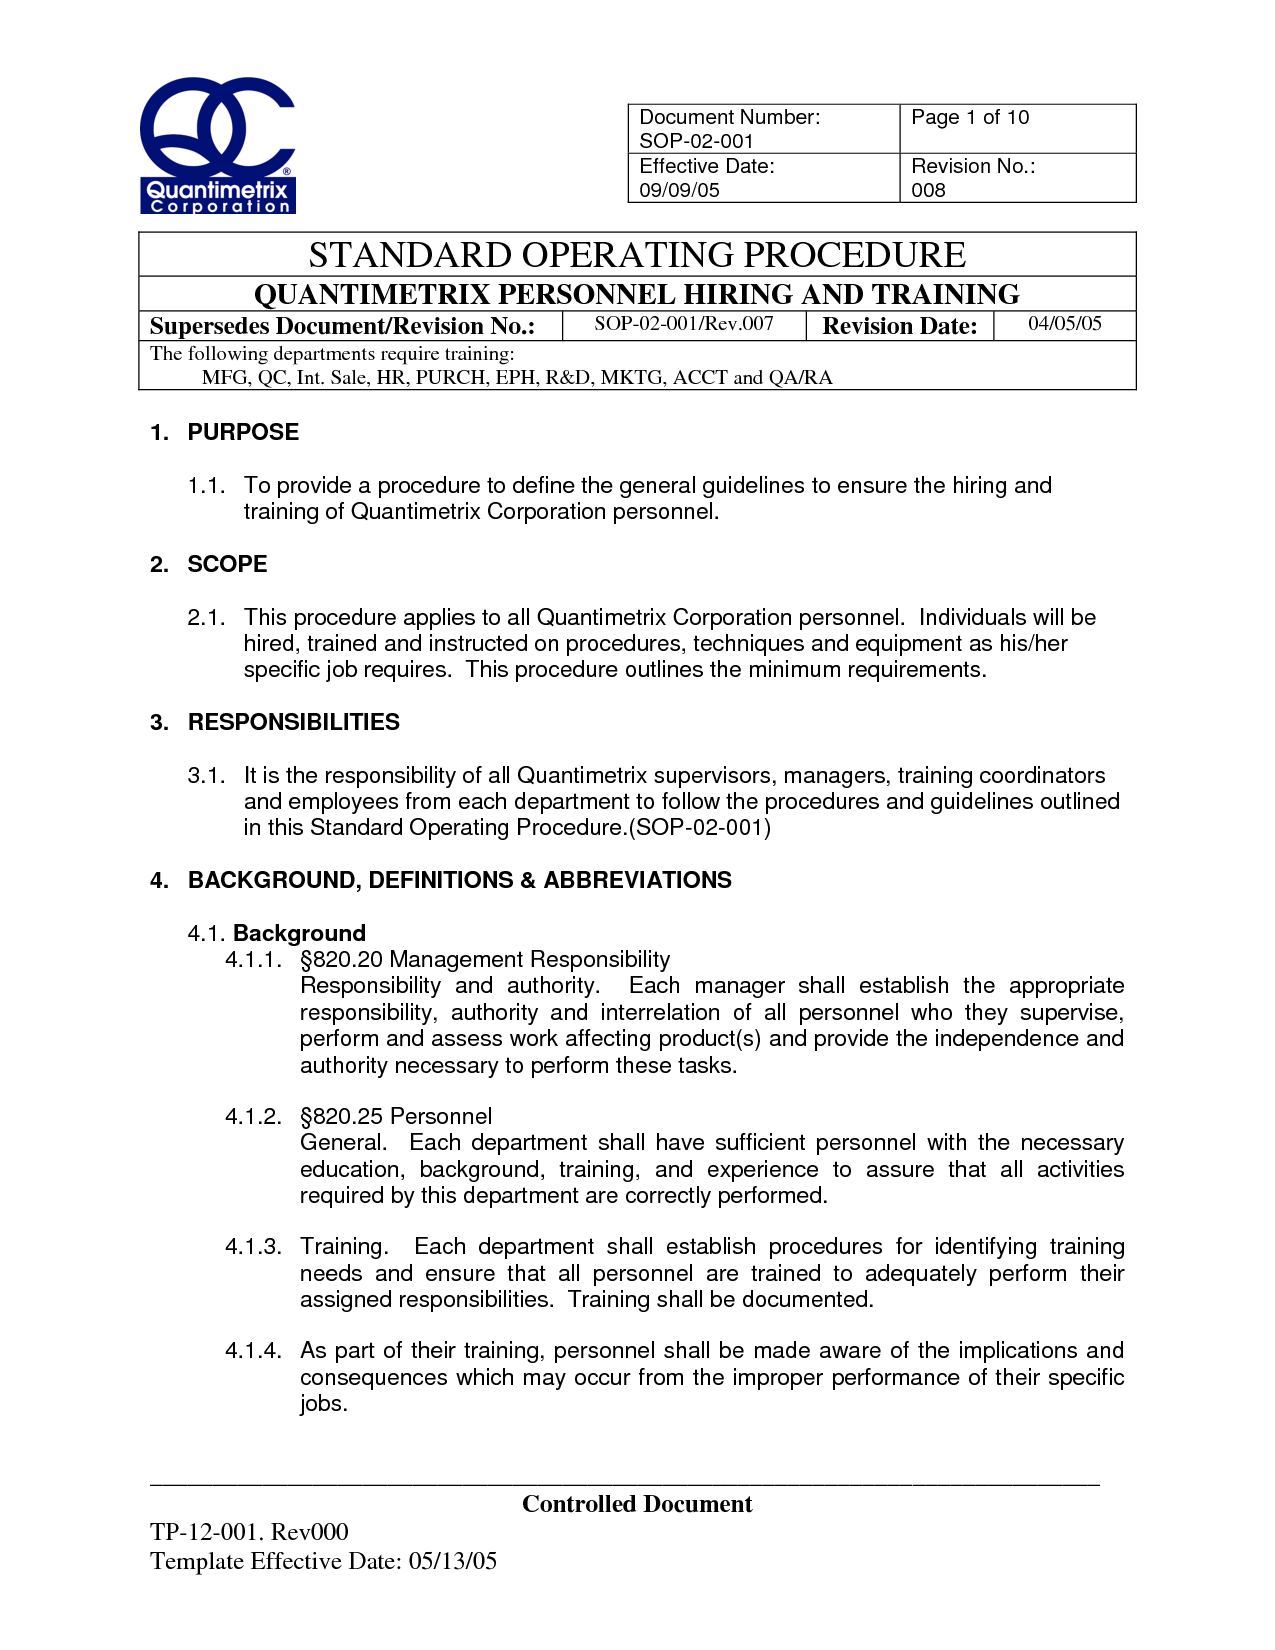 Iso Standard Operating Procedures Template  Sop Rev